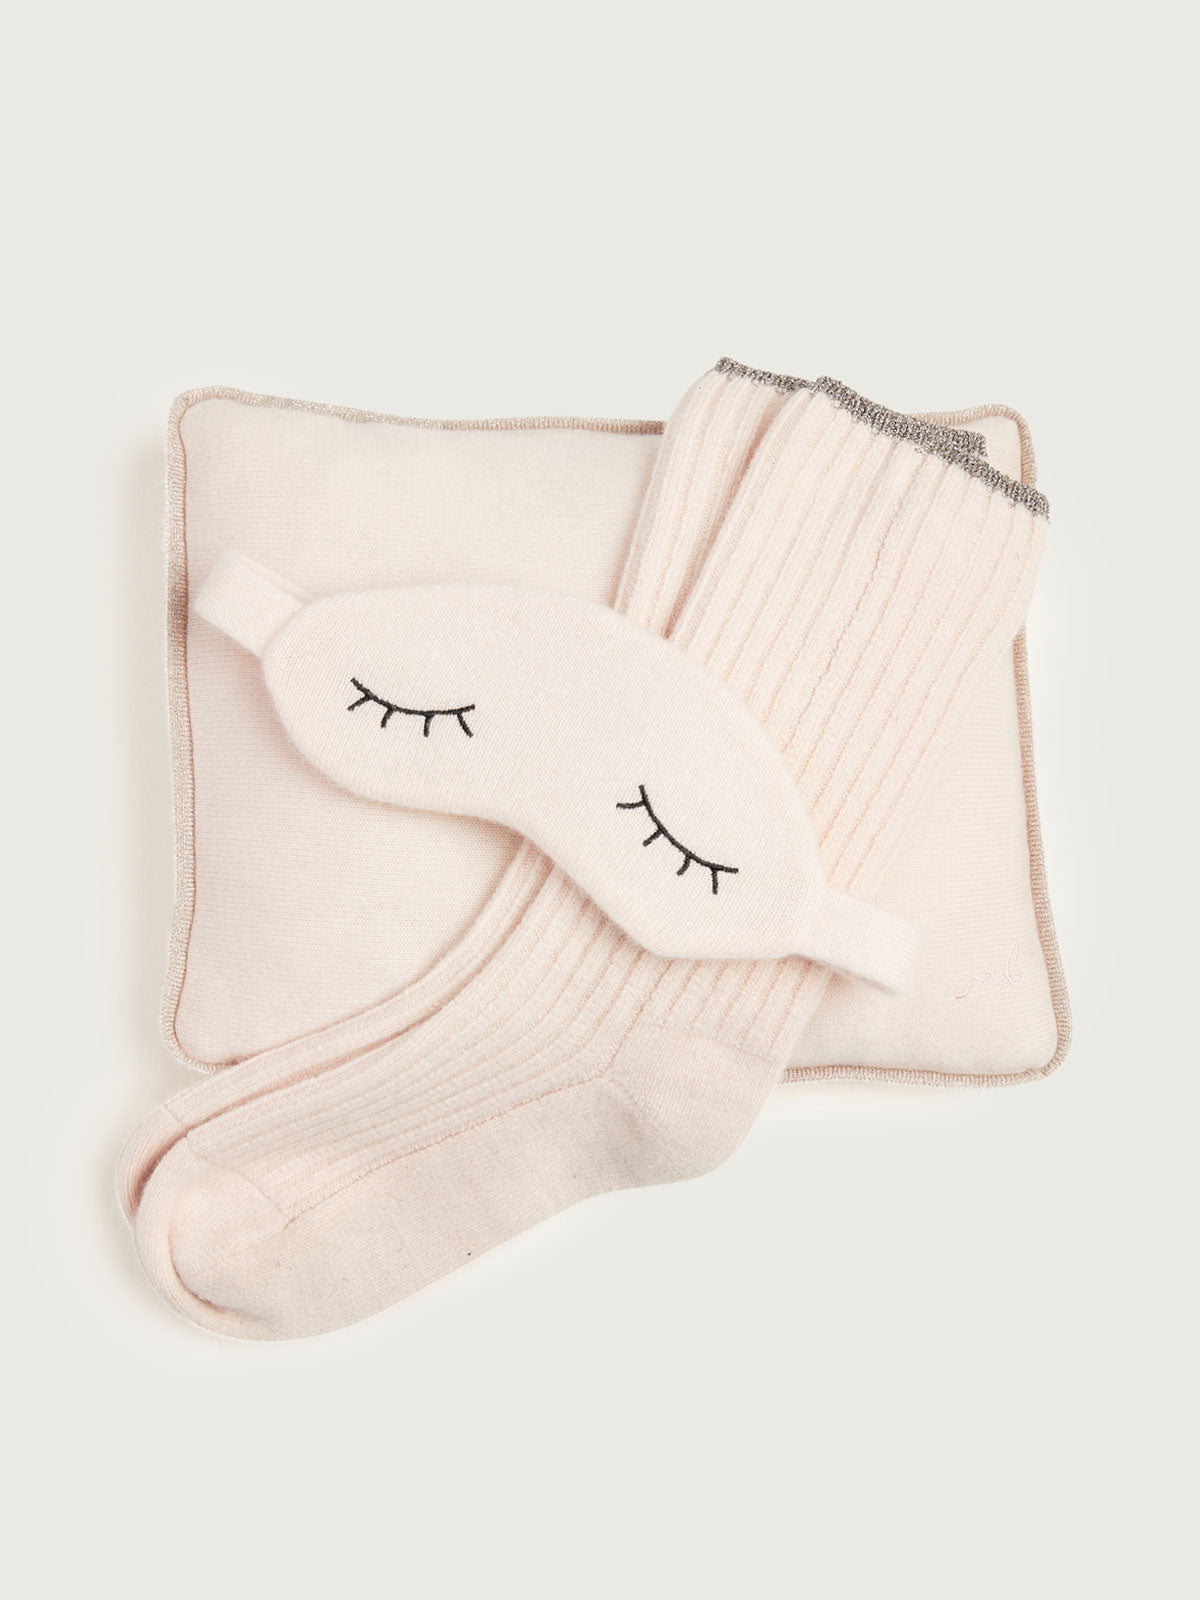 Sleepy Cashmere Gift Set in Vanilla By Morgan Lane